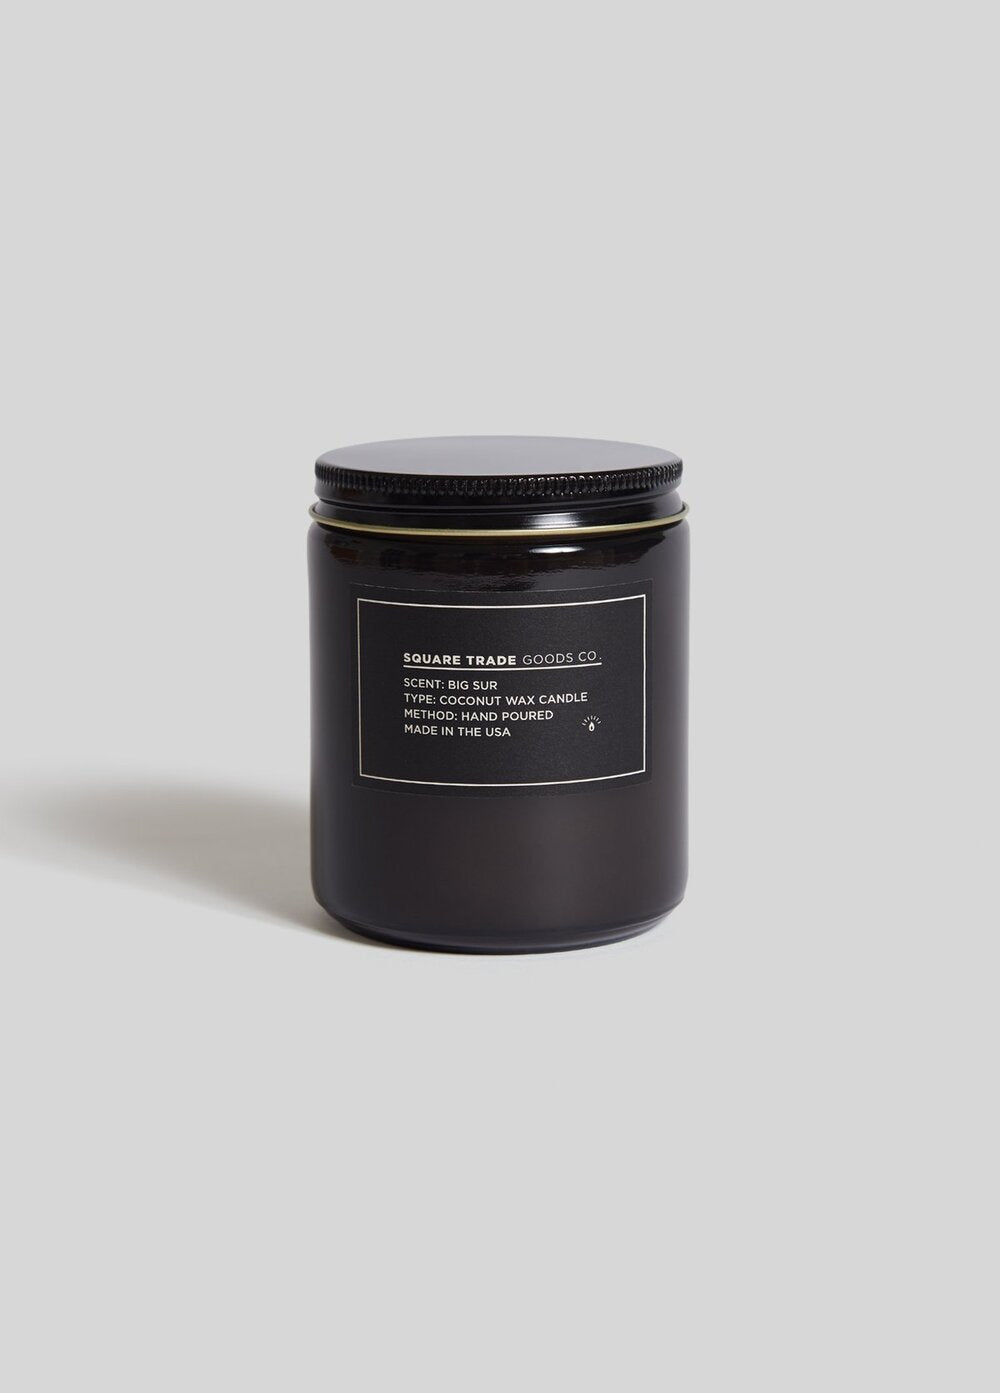 Big Sur Candle 8oz- Square Trade Goods